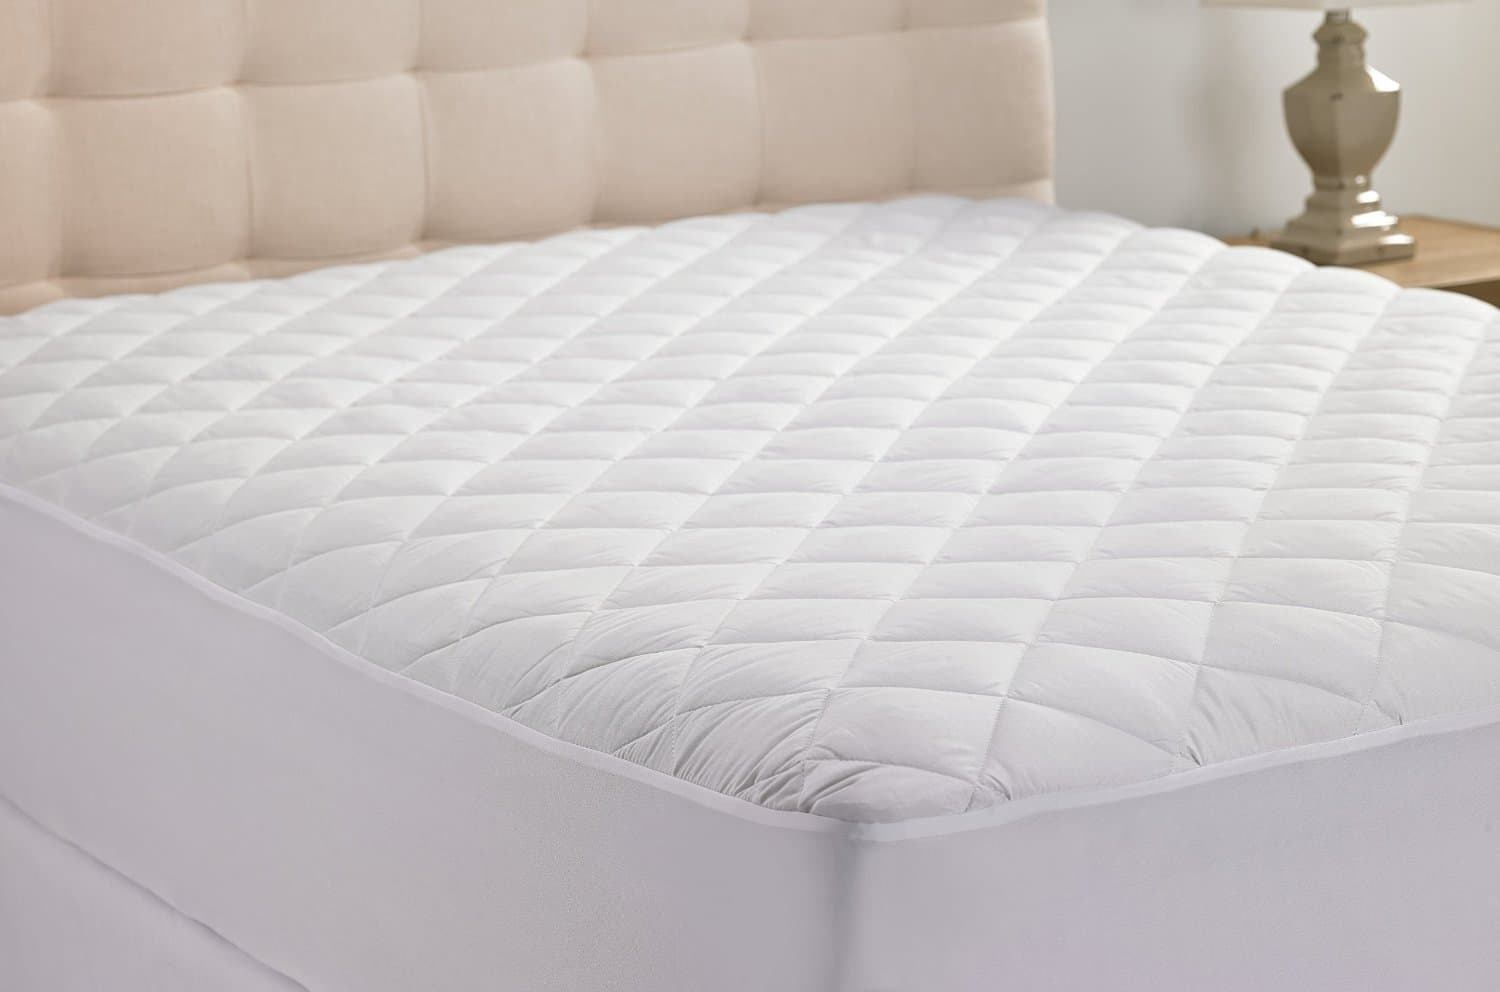 Best Mattress Amazon 3 Best King Mattress Pads Reviewed By Amazon Customers